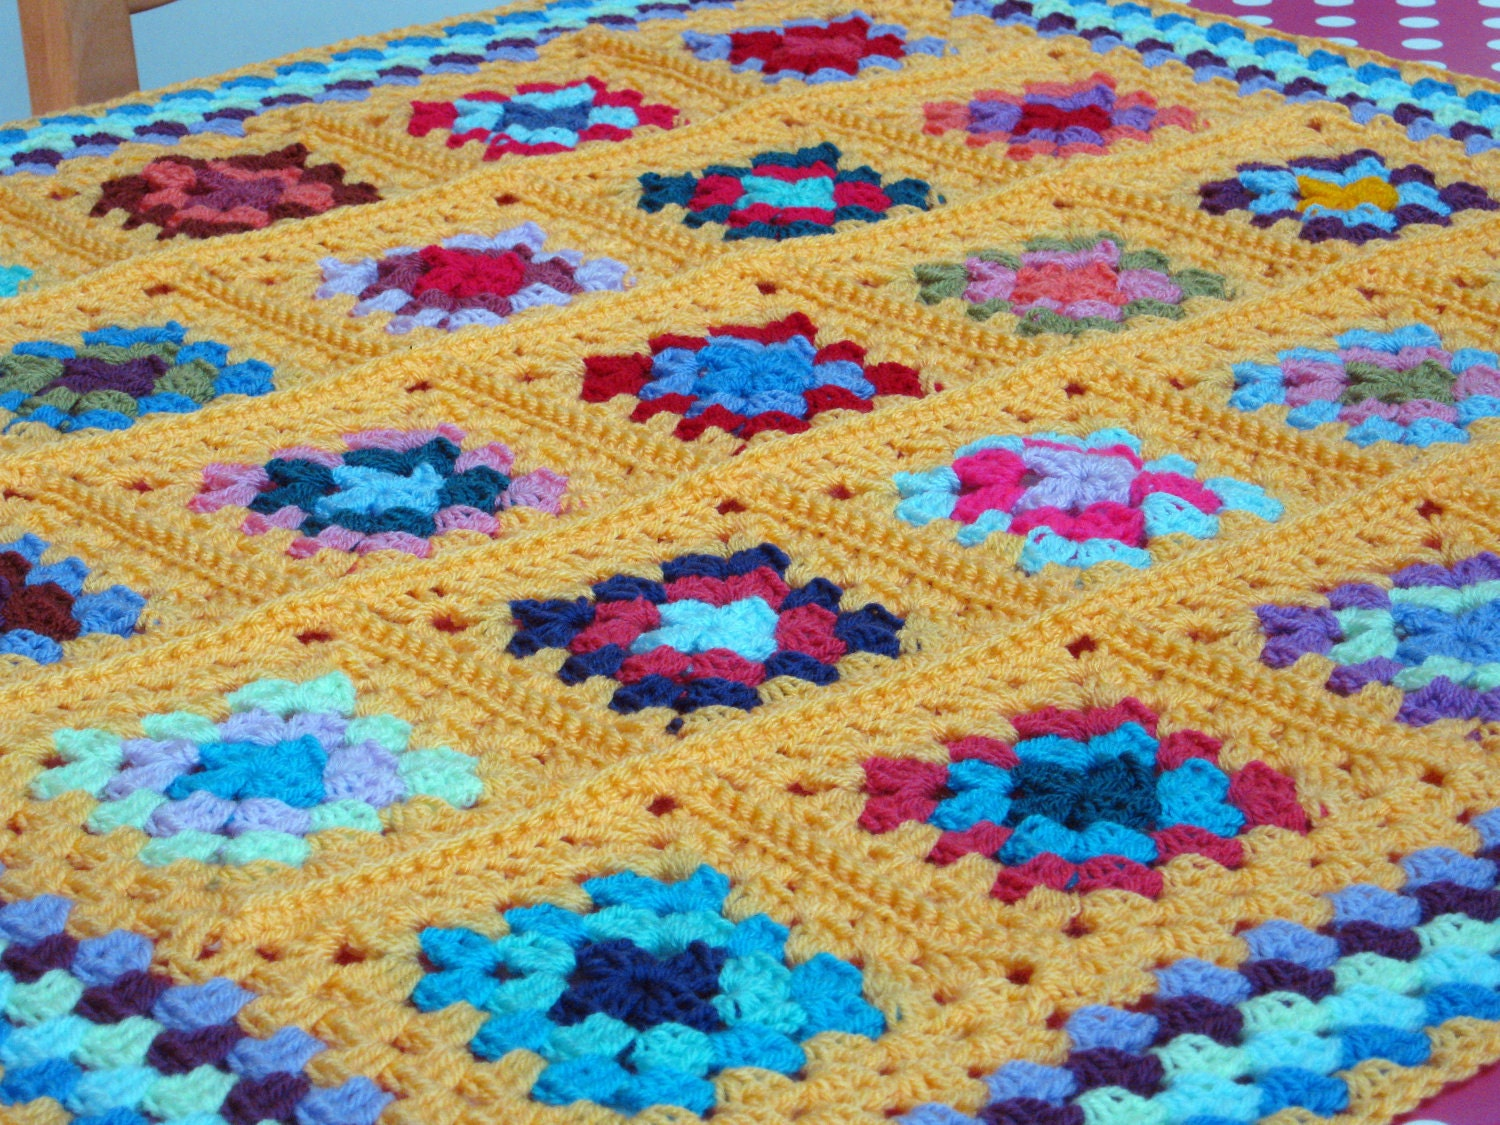 Bright Vibrant SUNSHINE Yellow Crochet Granny Square Blanket Afghan Throw